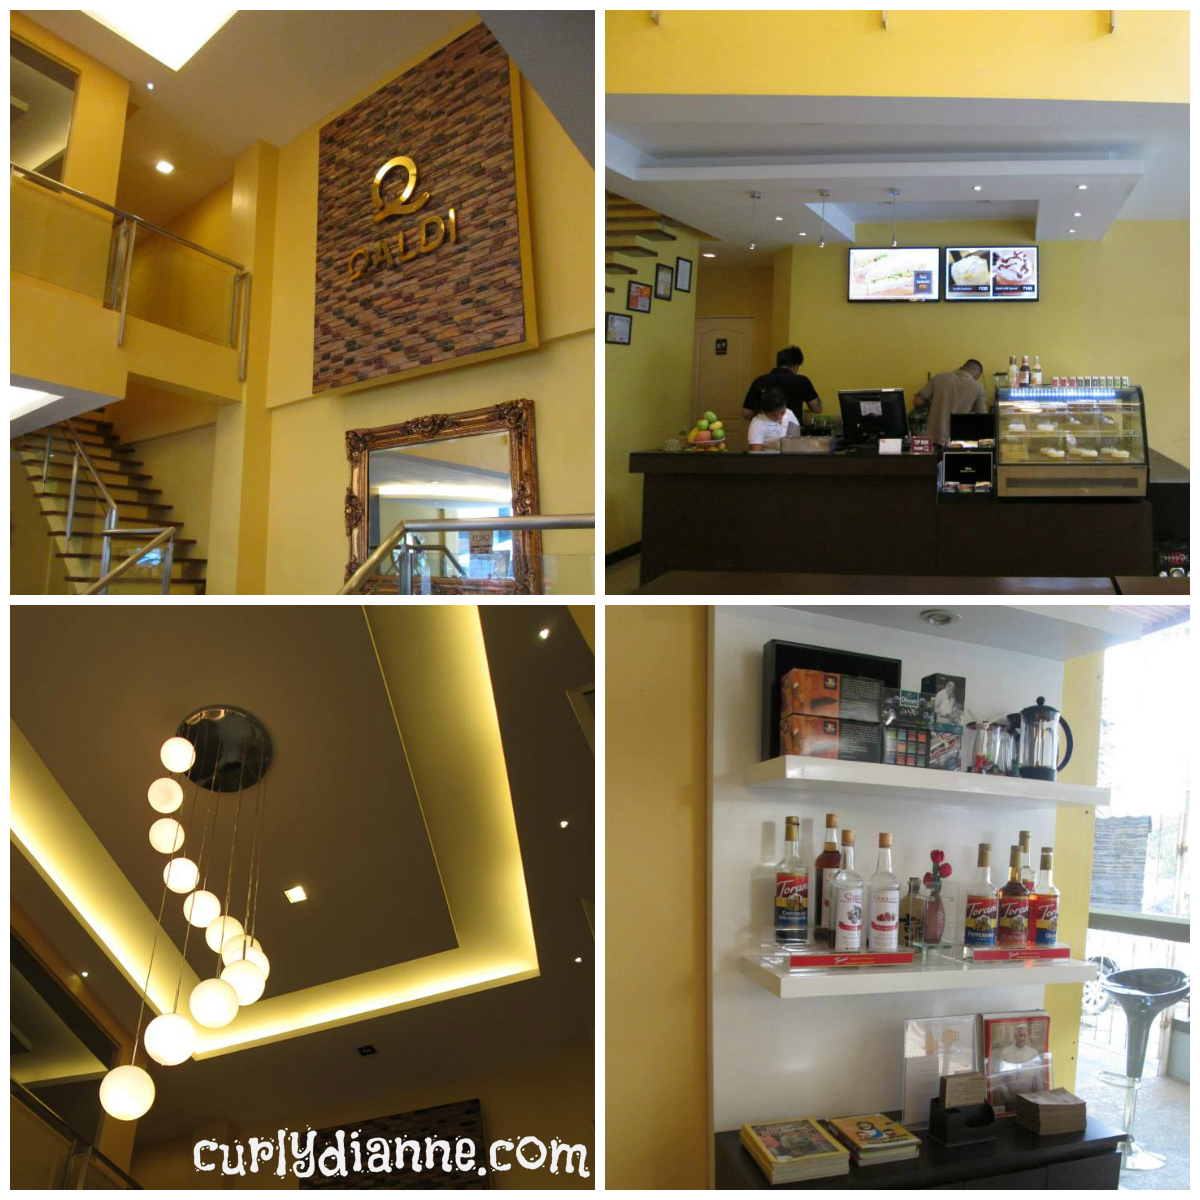 Qaldi Coffee Bar and Cyber Cafe